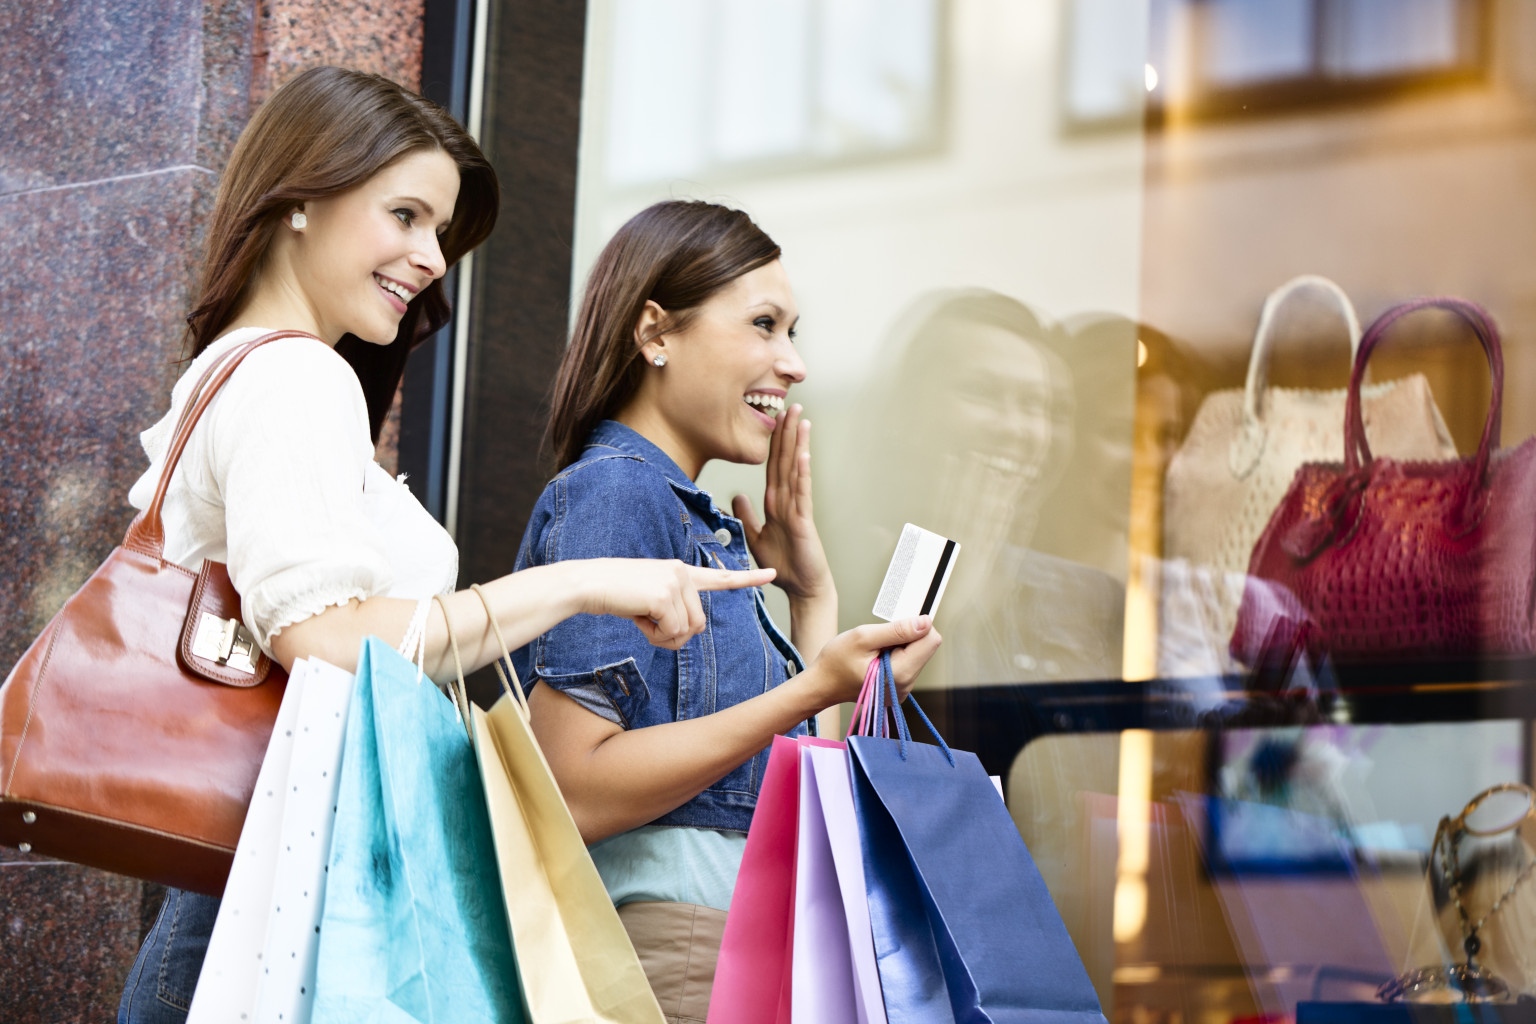 ladies shopping and dining - HD1536×1024